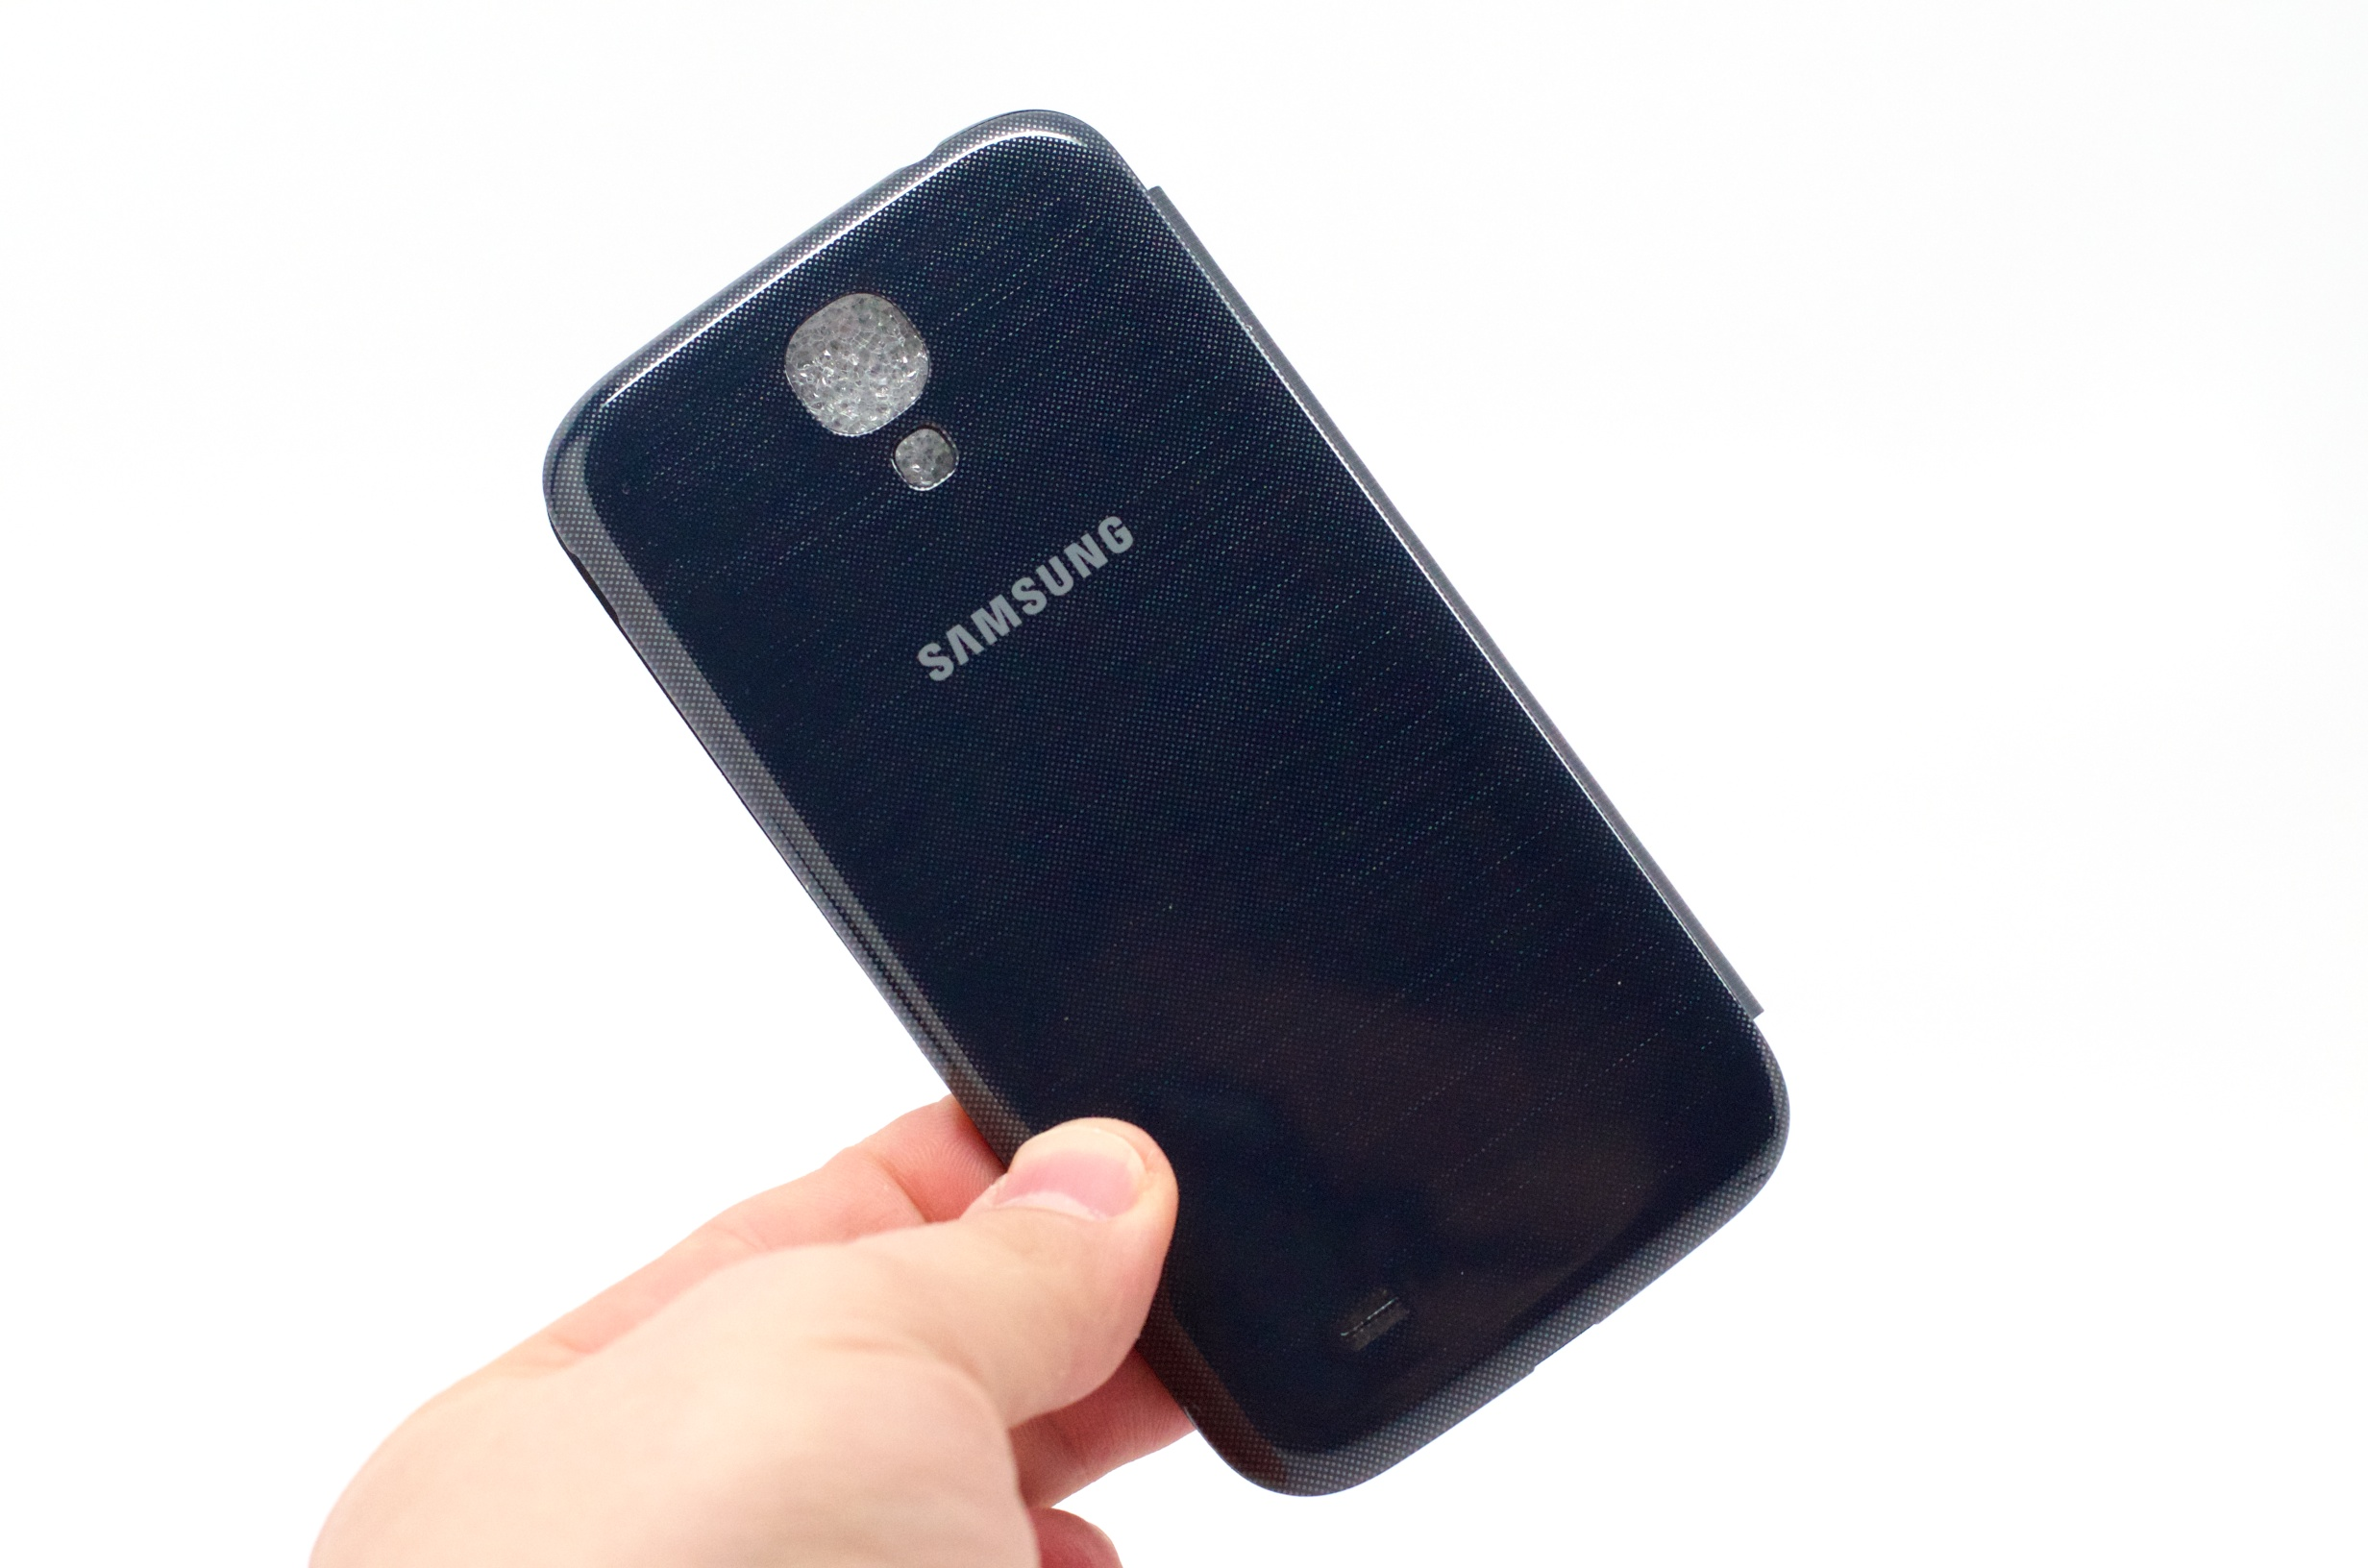 Samsung galaxy s4 flip cover hands on video the samsung galaxy s4 flip cover is a nice case ccuart Image collections